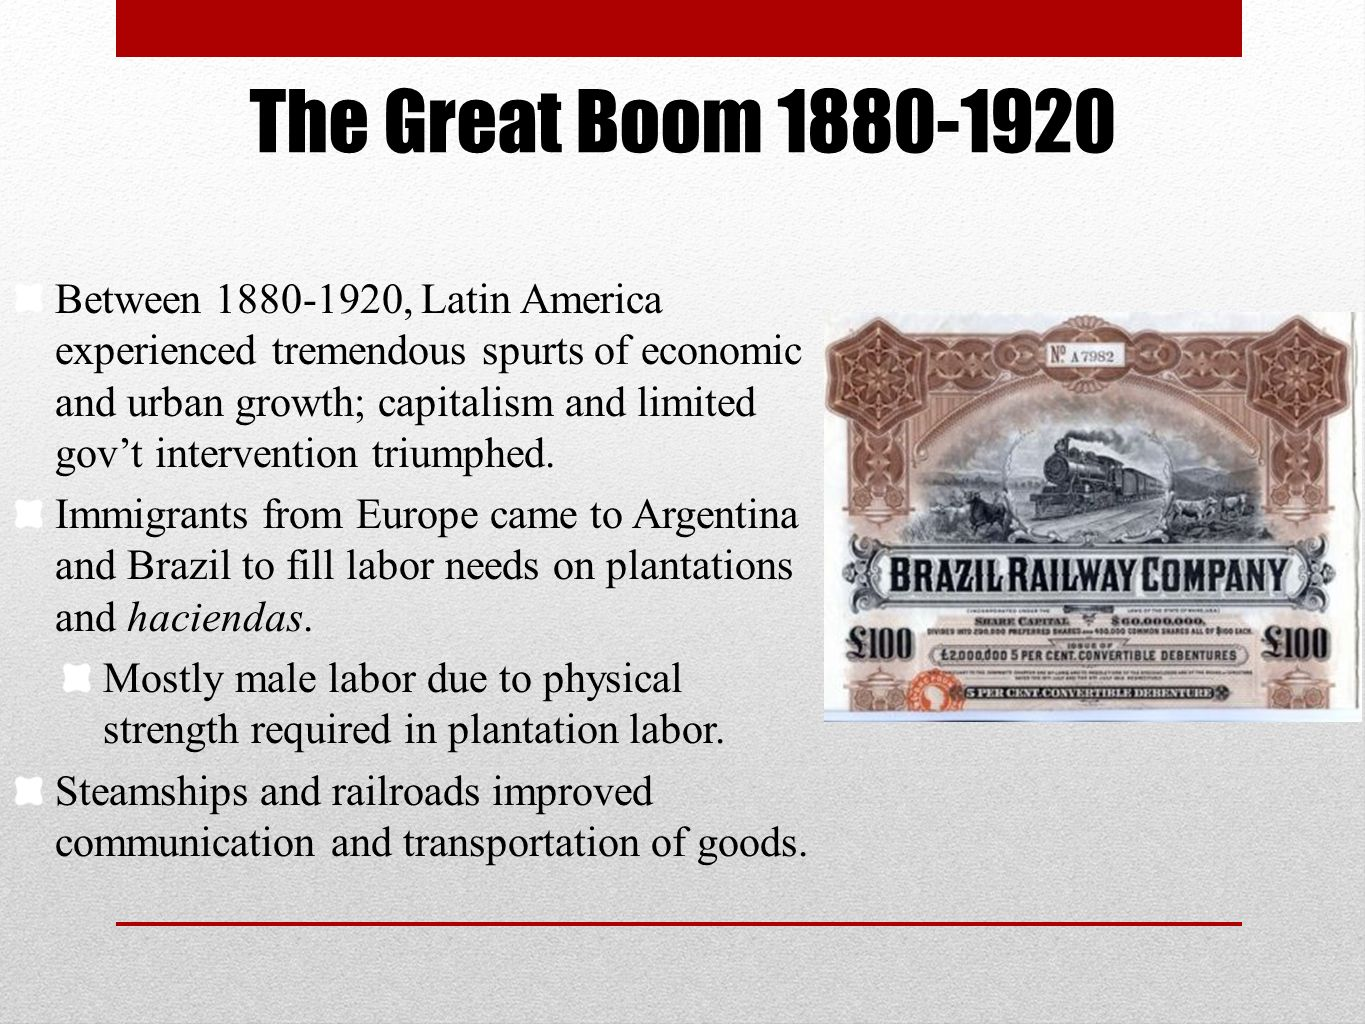 The Great Boom 1880-1920